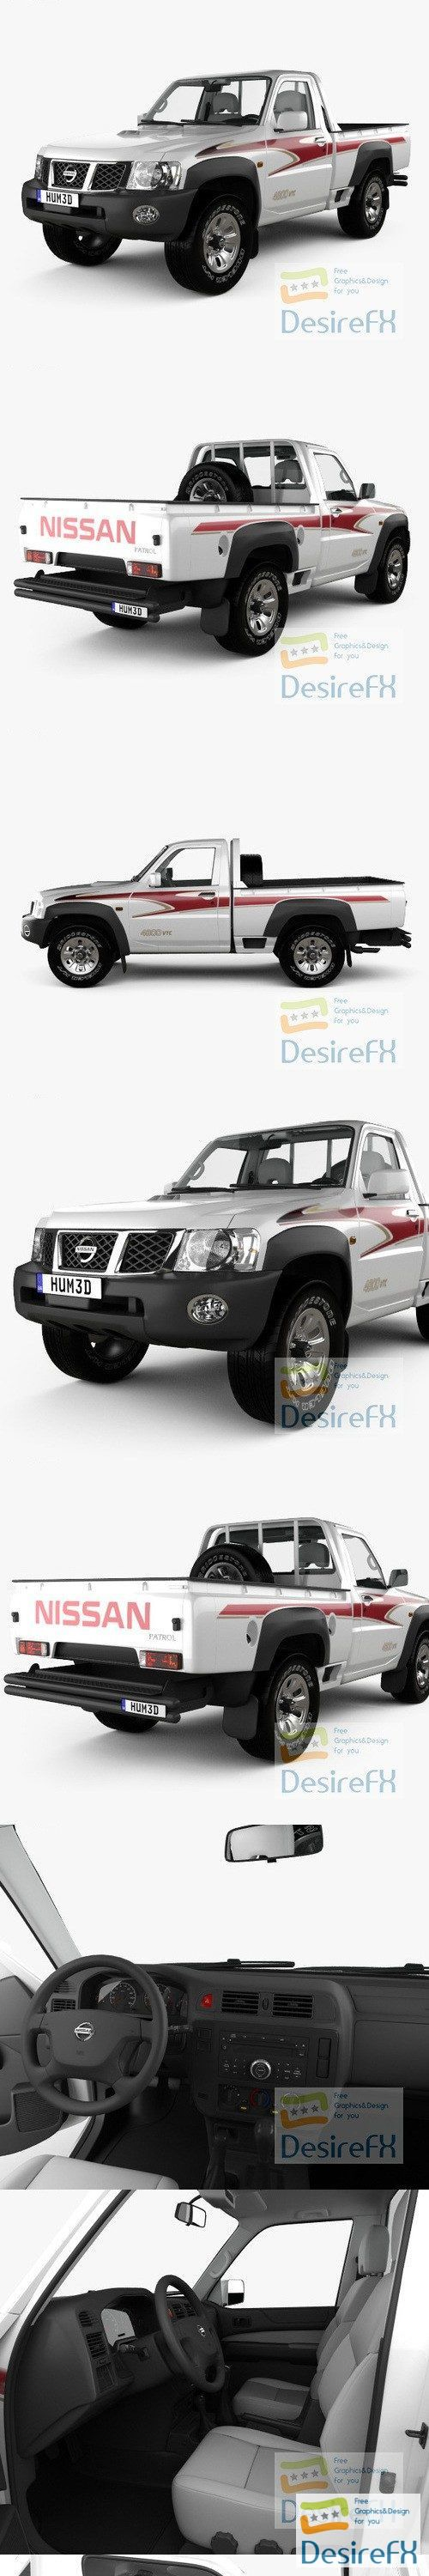 Nissan Patrol pickup with HQ interior 2016 3D Model